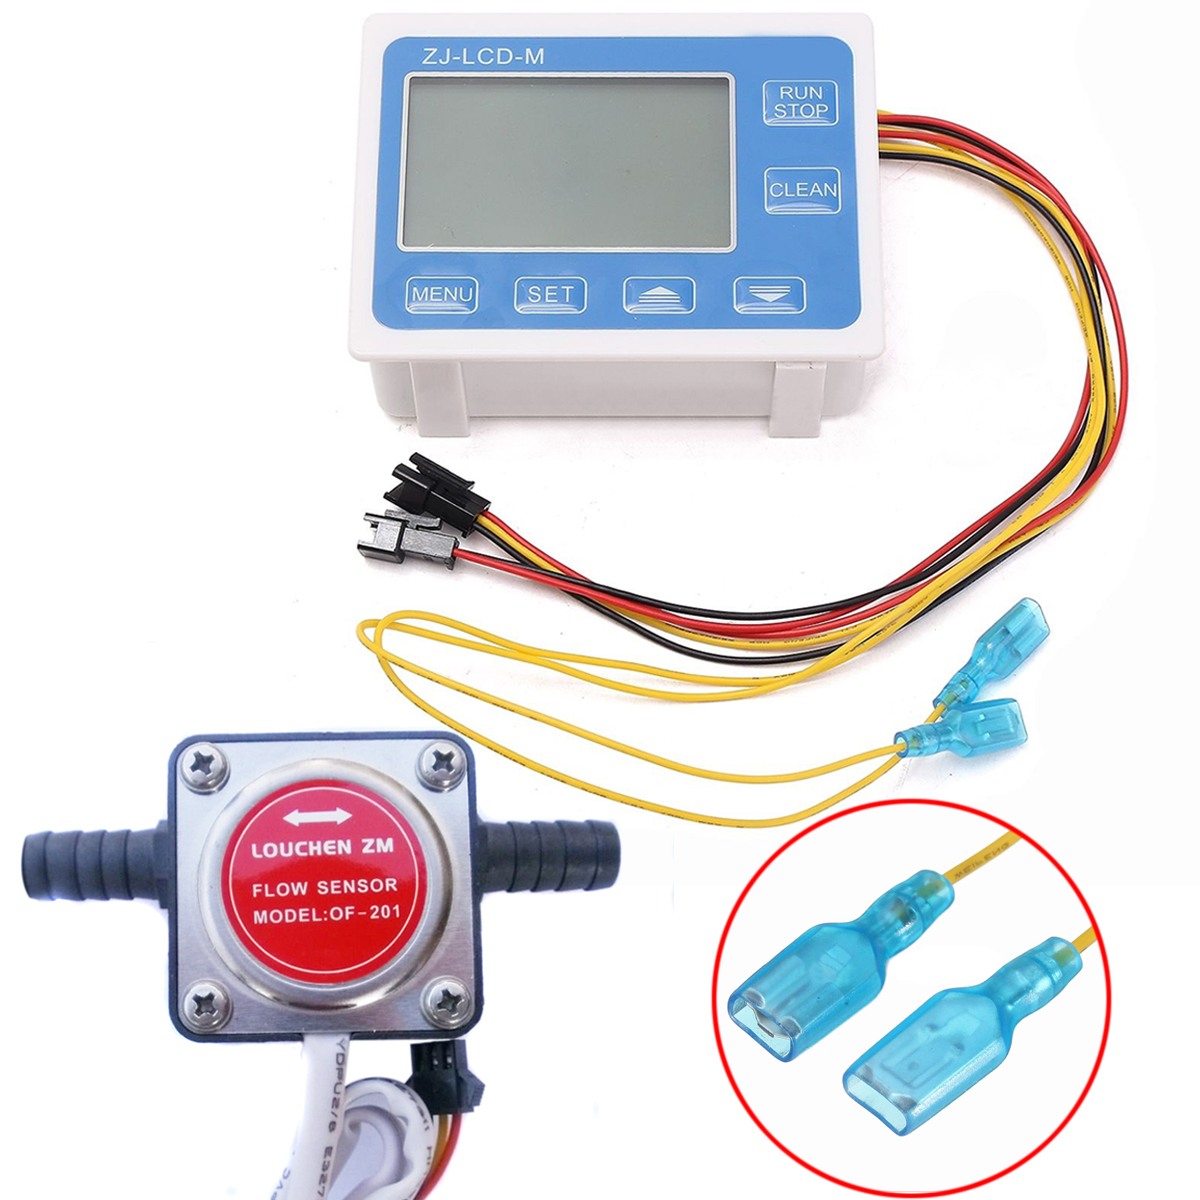 LCD Digital Fuel Oil Flow Meter Flowmeter With 13mm Gasoline Gear Flow Sensor 0-10LPM Mayitr lcd digital fuel oil flow meter flowmeter with 13mm gasoline gear flow sensor 0 10lpm